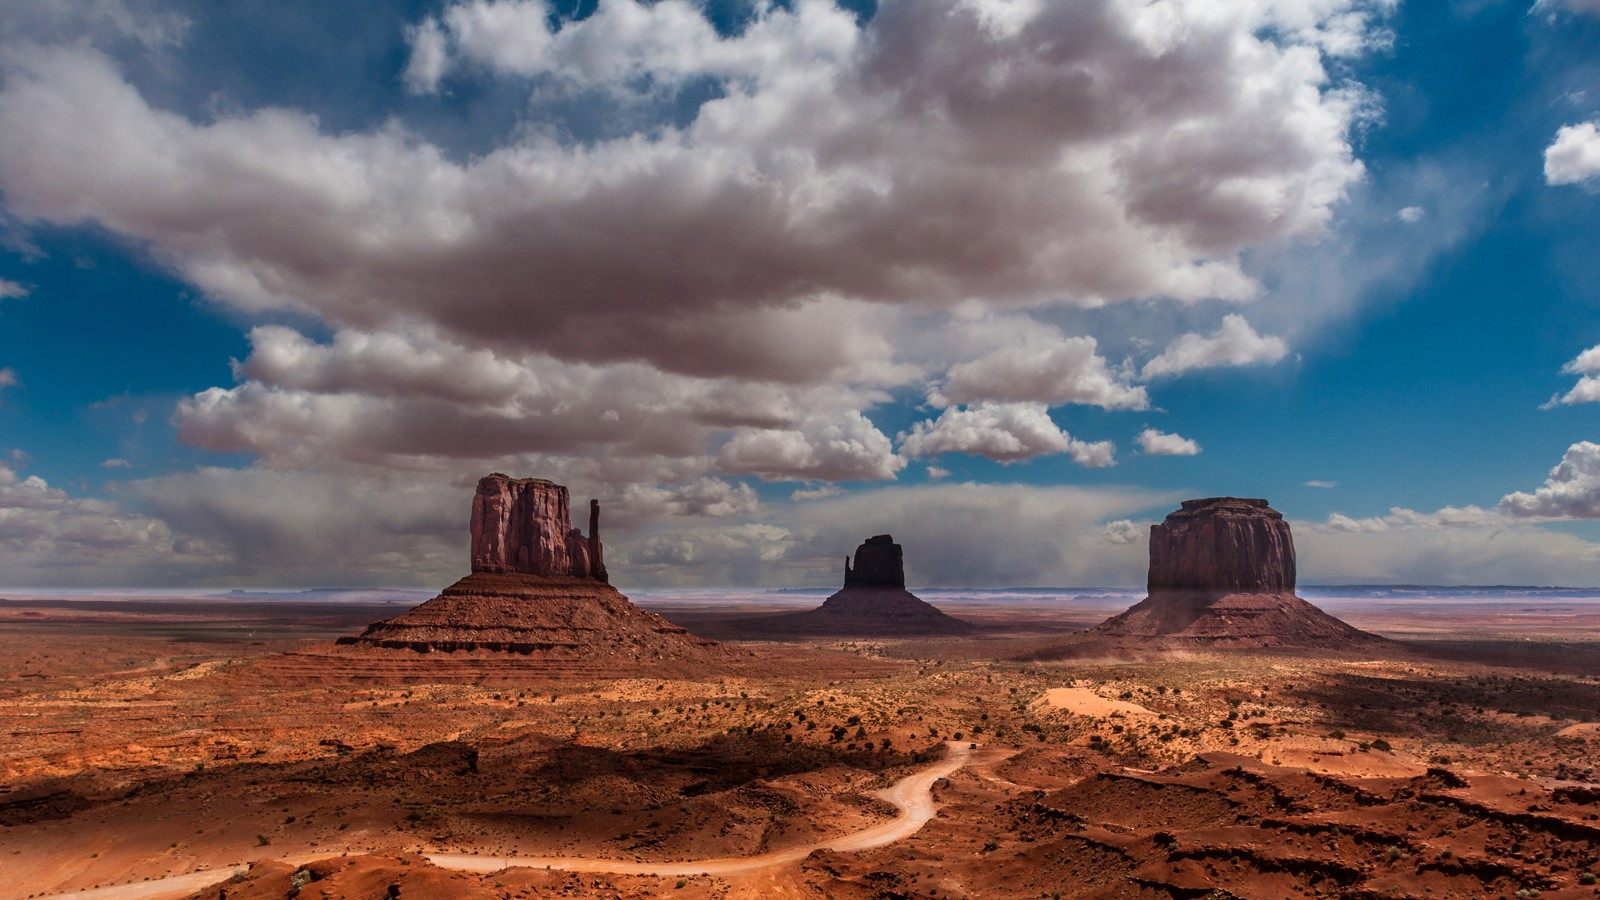 Three Buttes in Monument Valley, Arizona